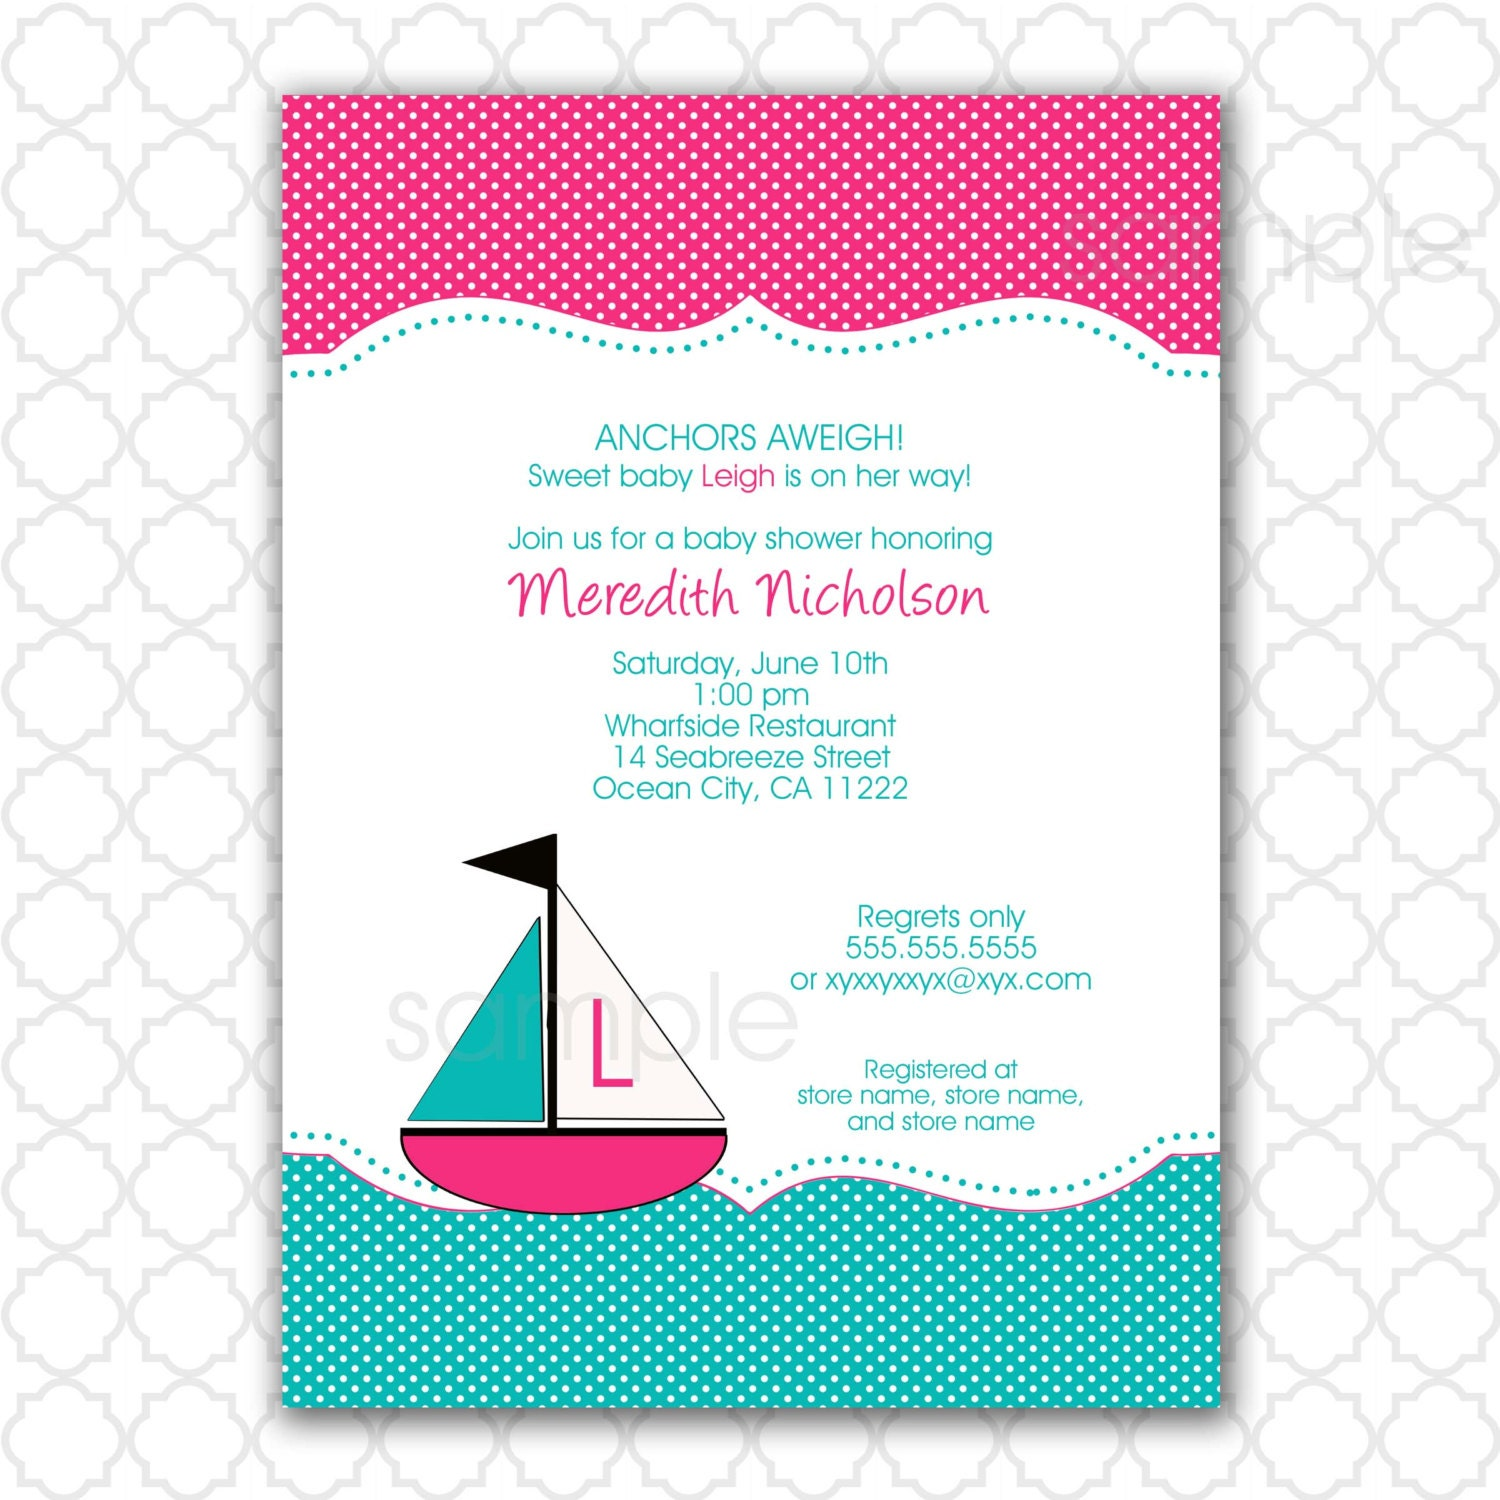 wedding invitations as well as walmart baby shower invitations